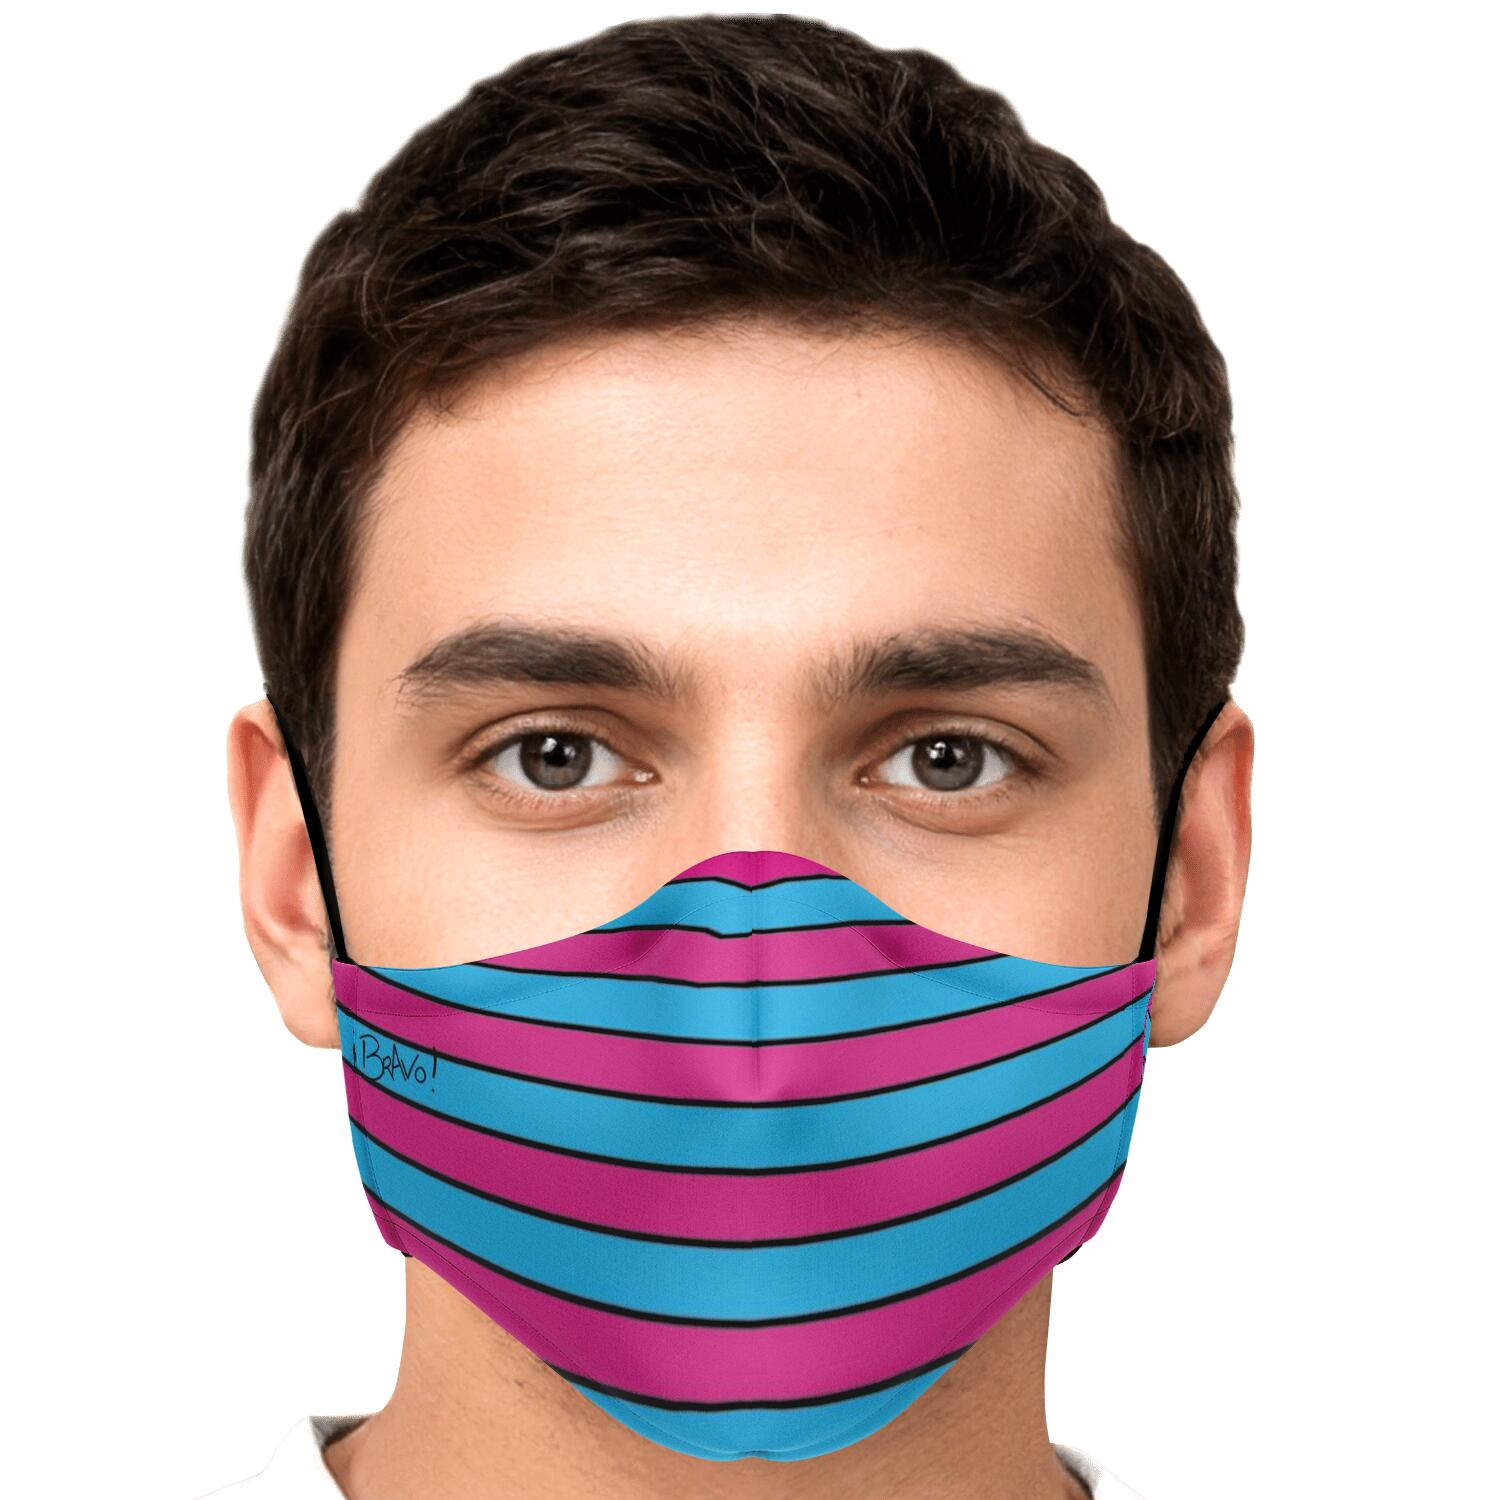 BRAVO PATTERN SERIES REUSABLE FASHION FACE MASK WITH REPLACEABLE FILTERS